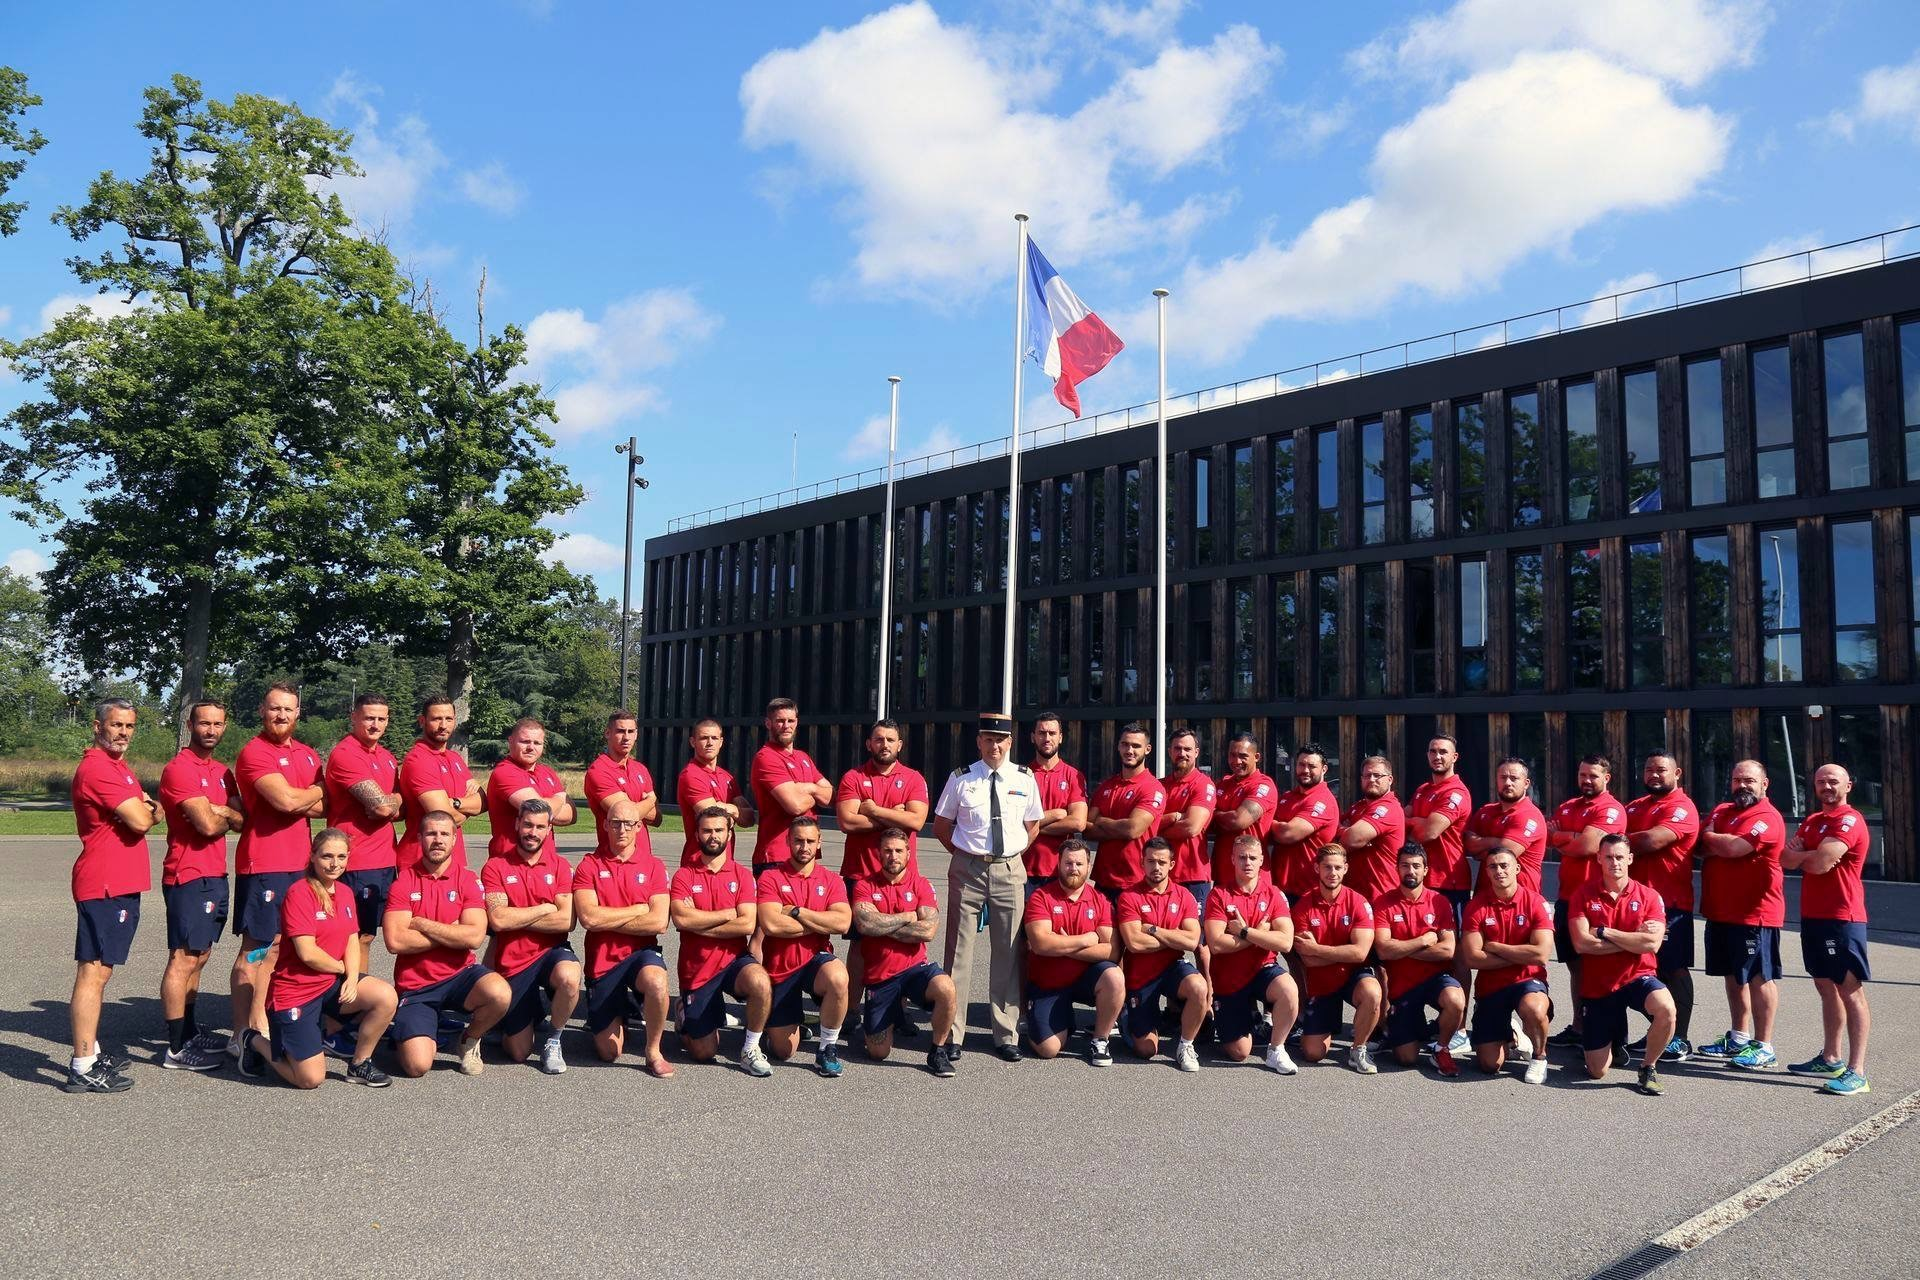 equipe militaire france